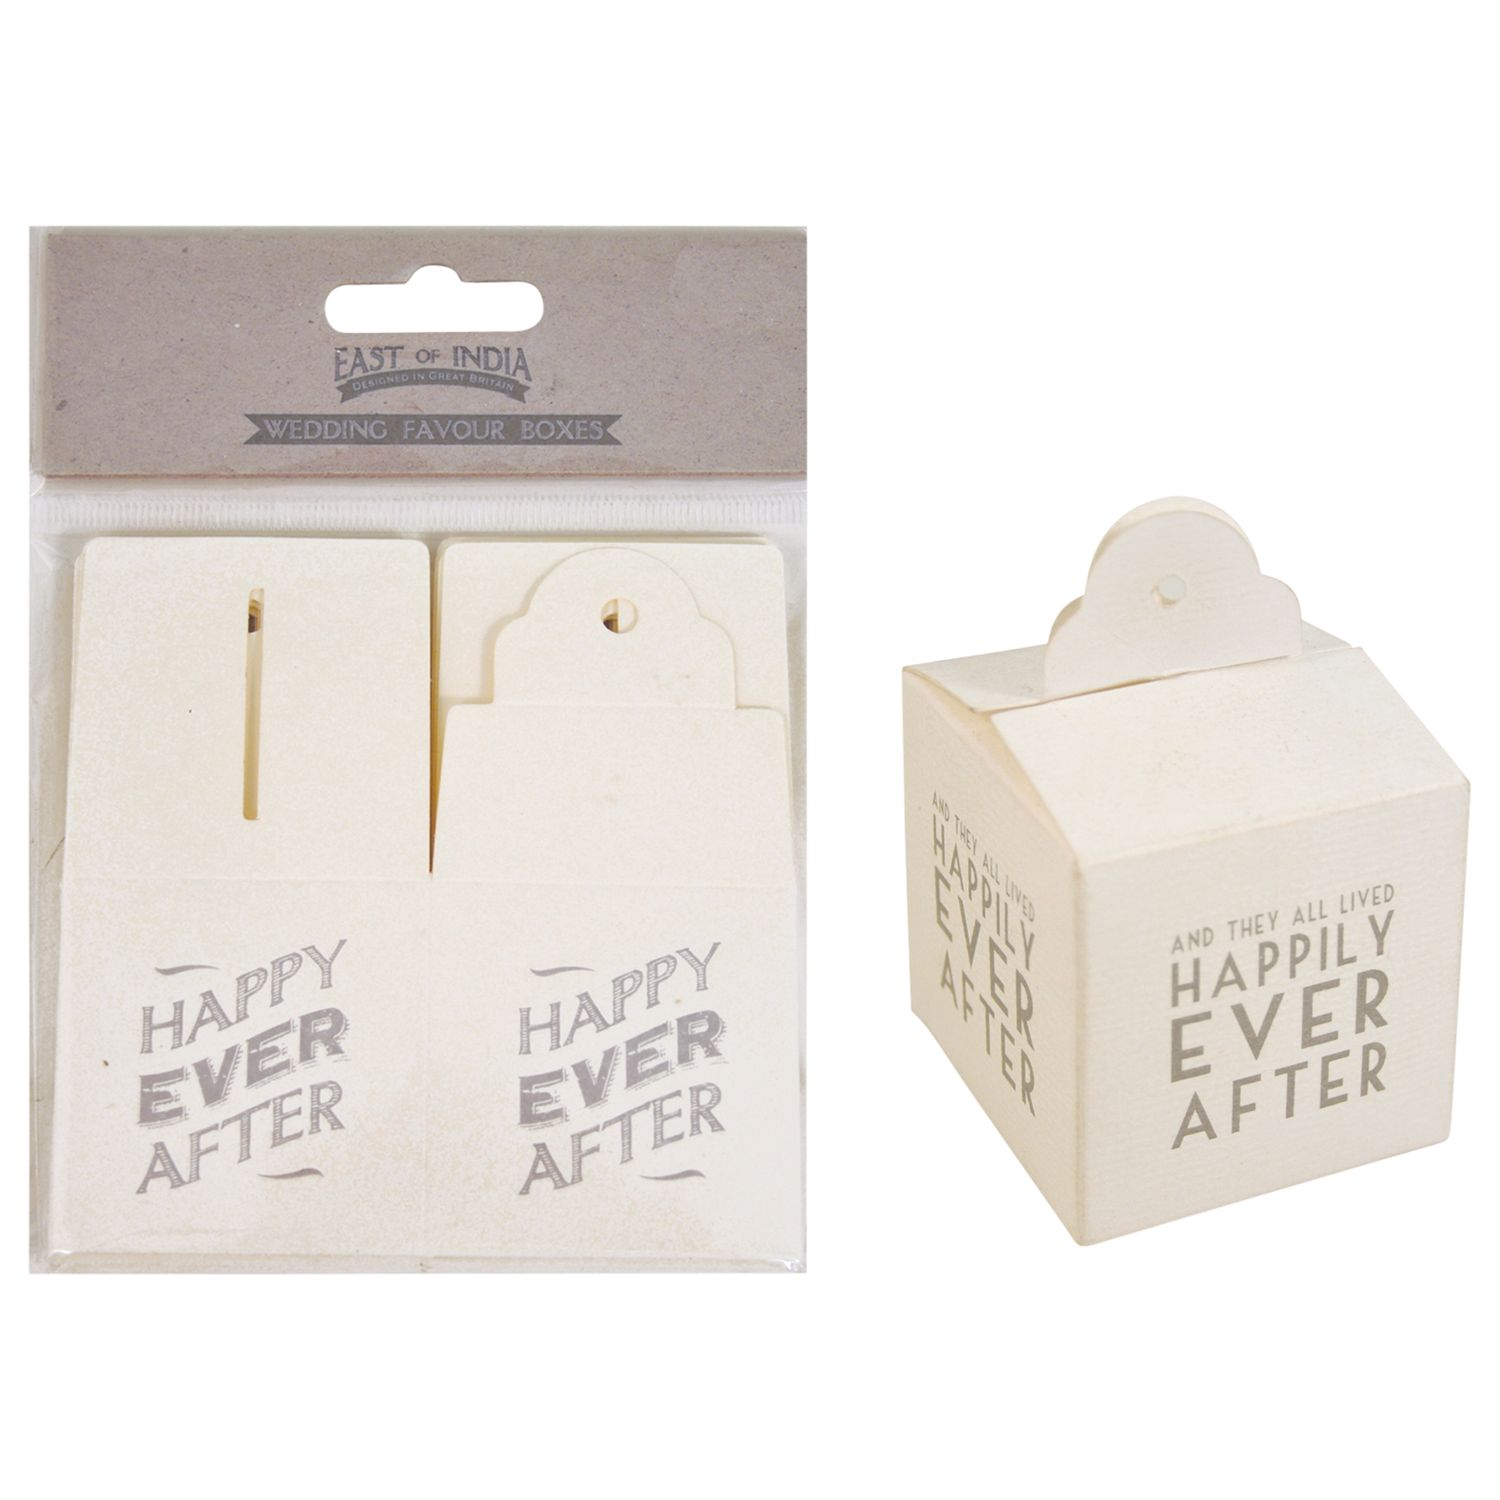 John Lewis Wedding Gift Box : Buy East of India Square Favour Boxes, Set of 6, Cream Online at ...